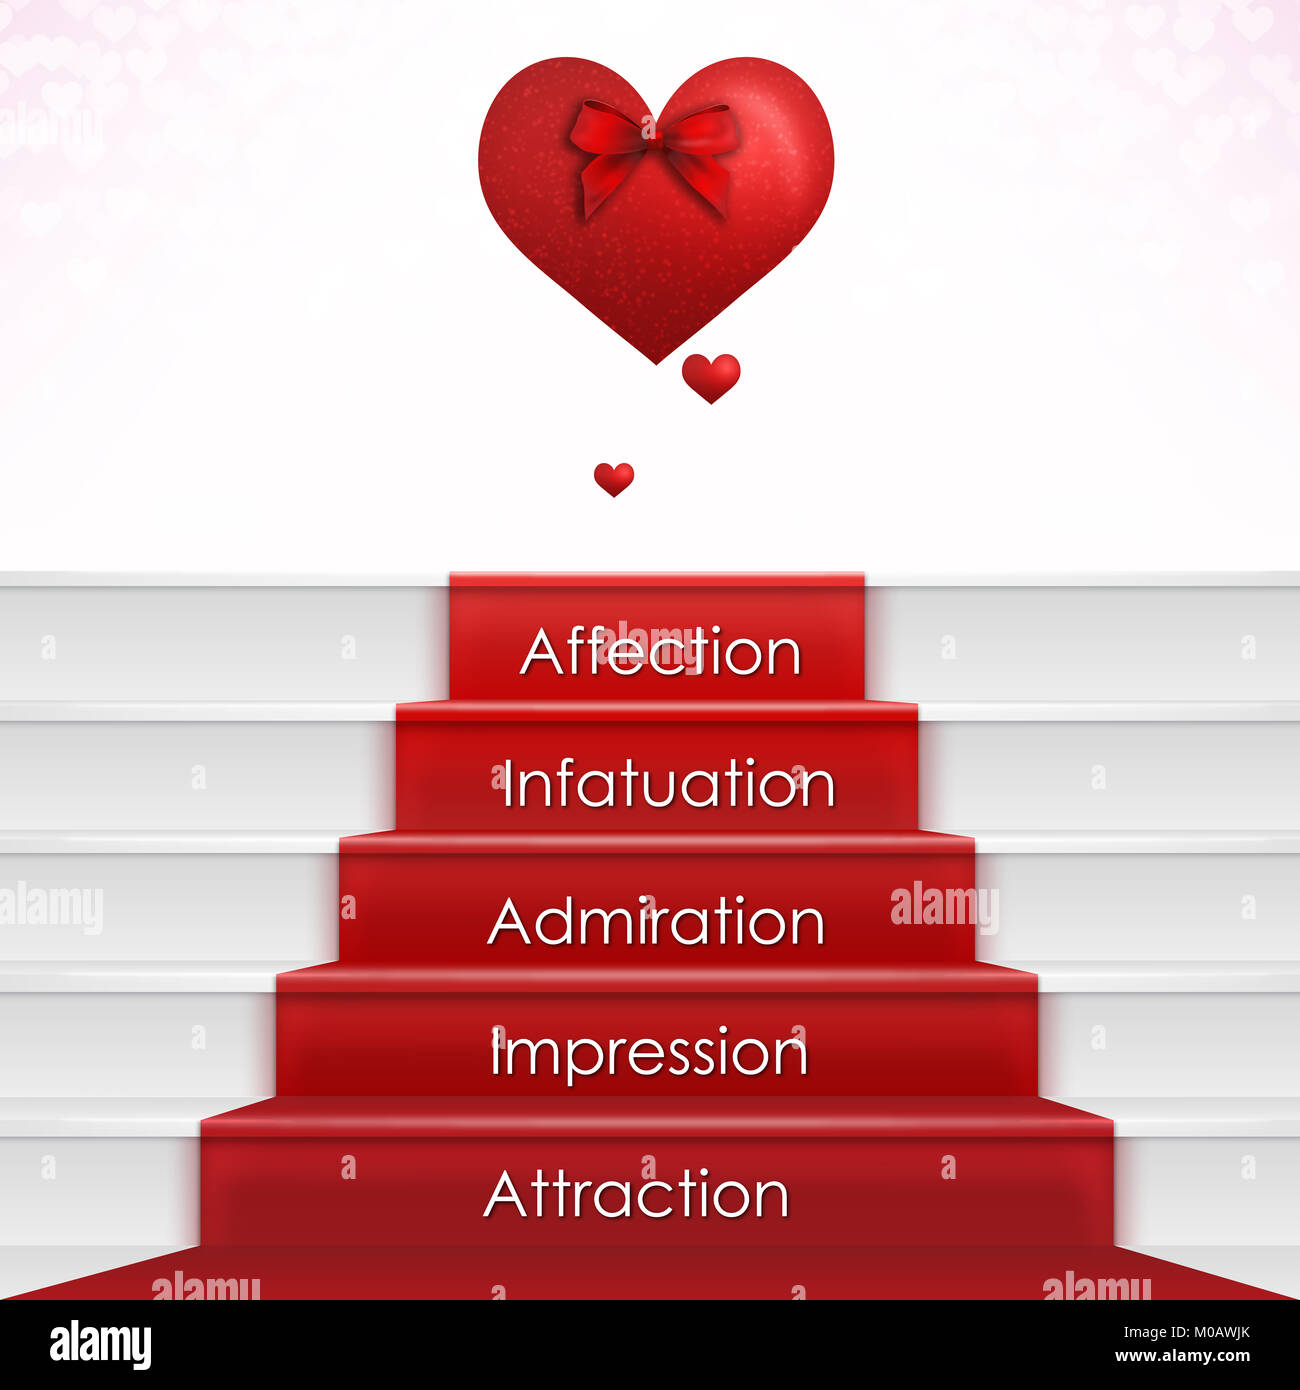 Steps of falling in love process with hearts, stairs, red carpet and stairs. Concept love card for valentine's - Stock Image